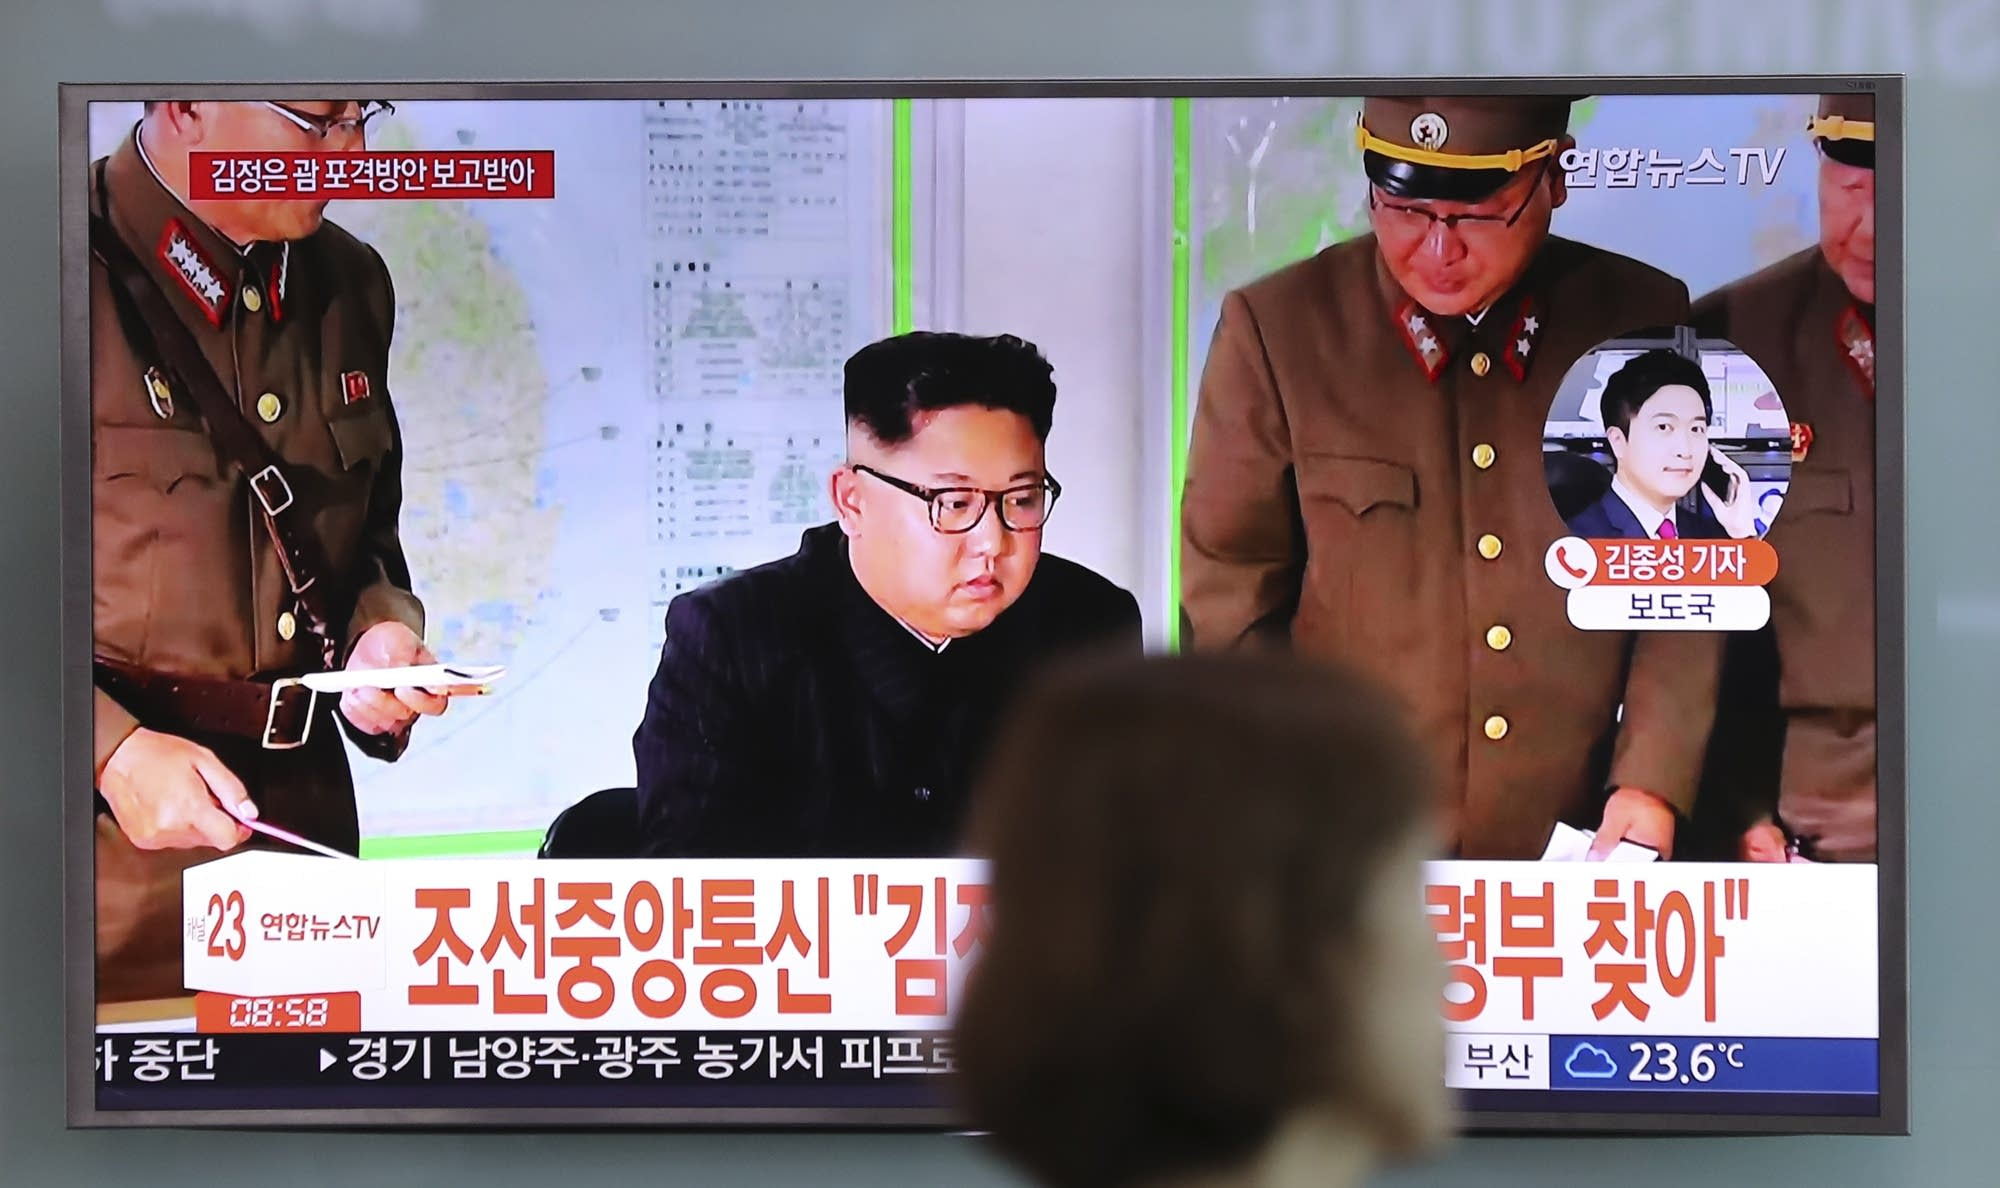 United Nations watchdog: North Korea nuclear test 'extremely regrettable